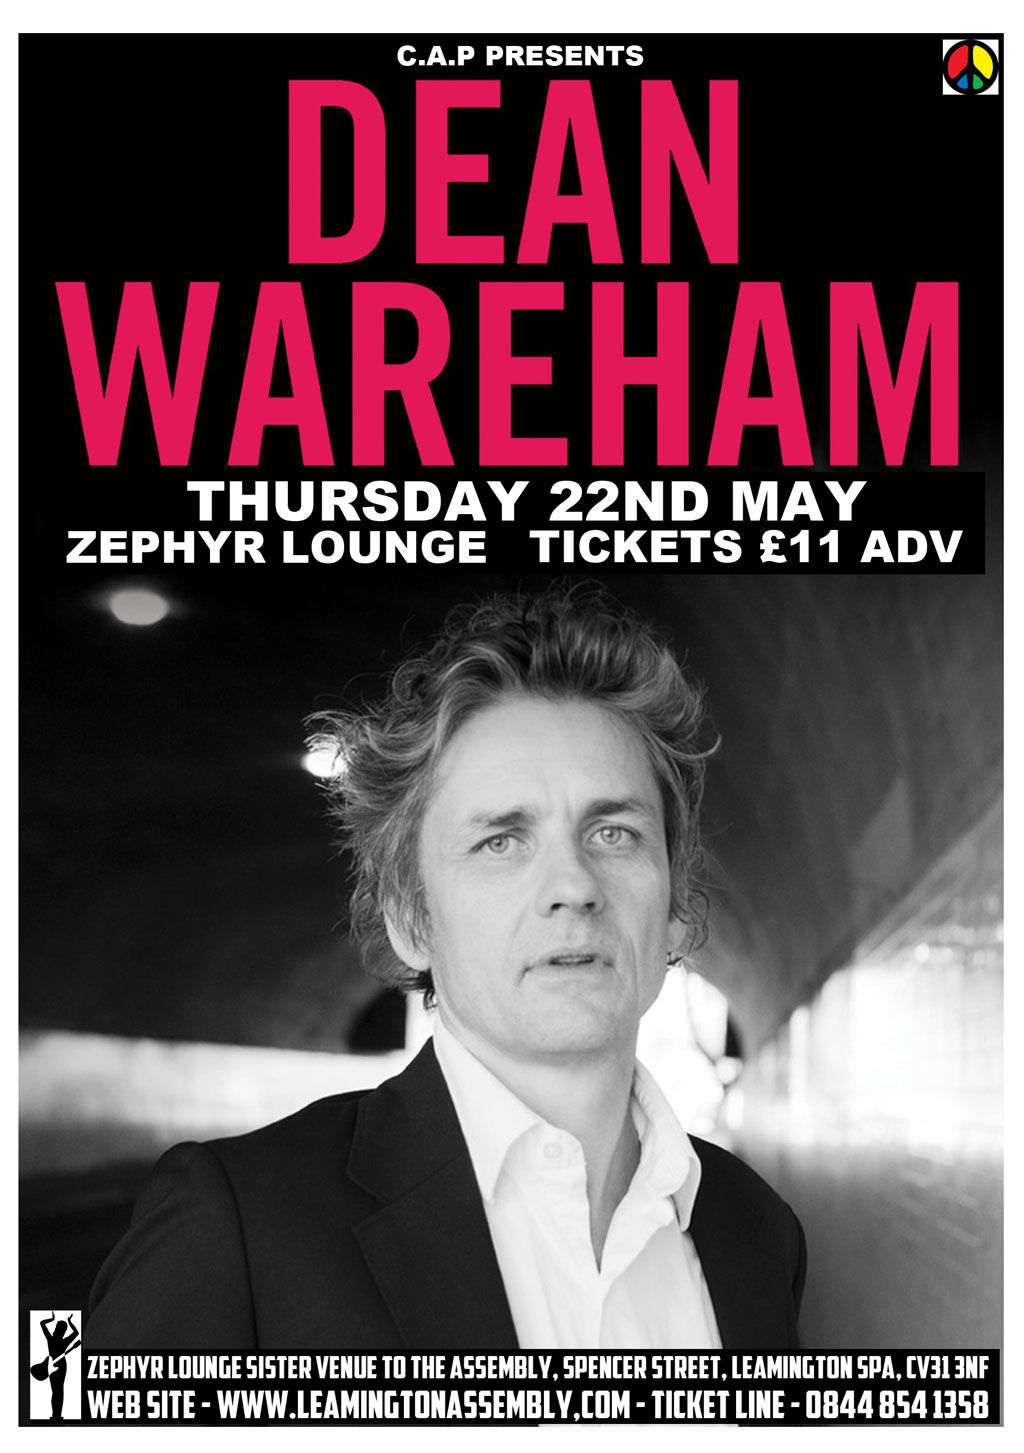 Poster for 22 May 2014 at The Zephyr Lounge, Leamington Spa, UK